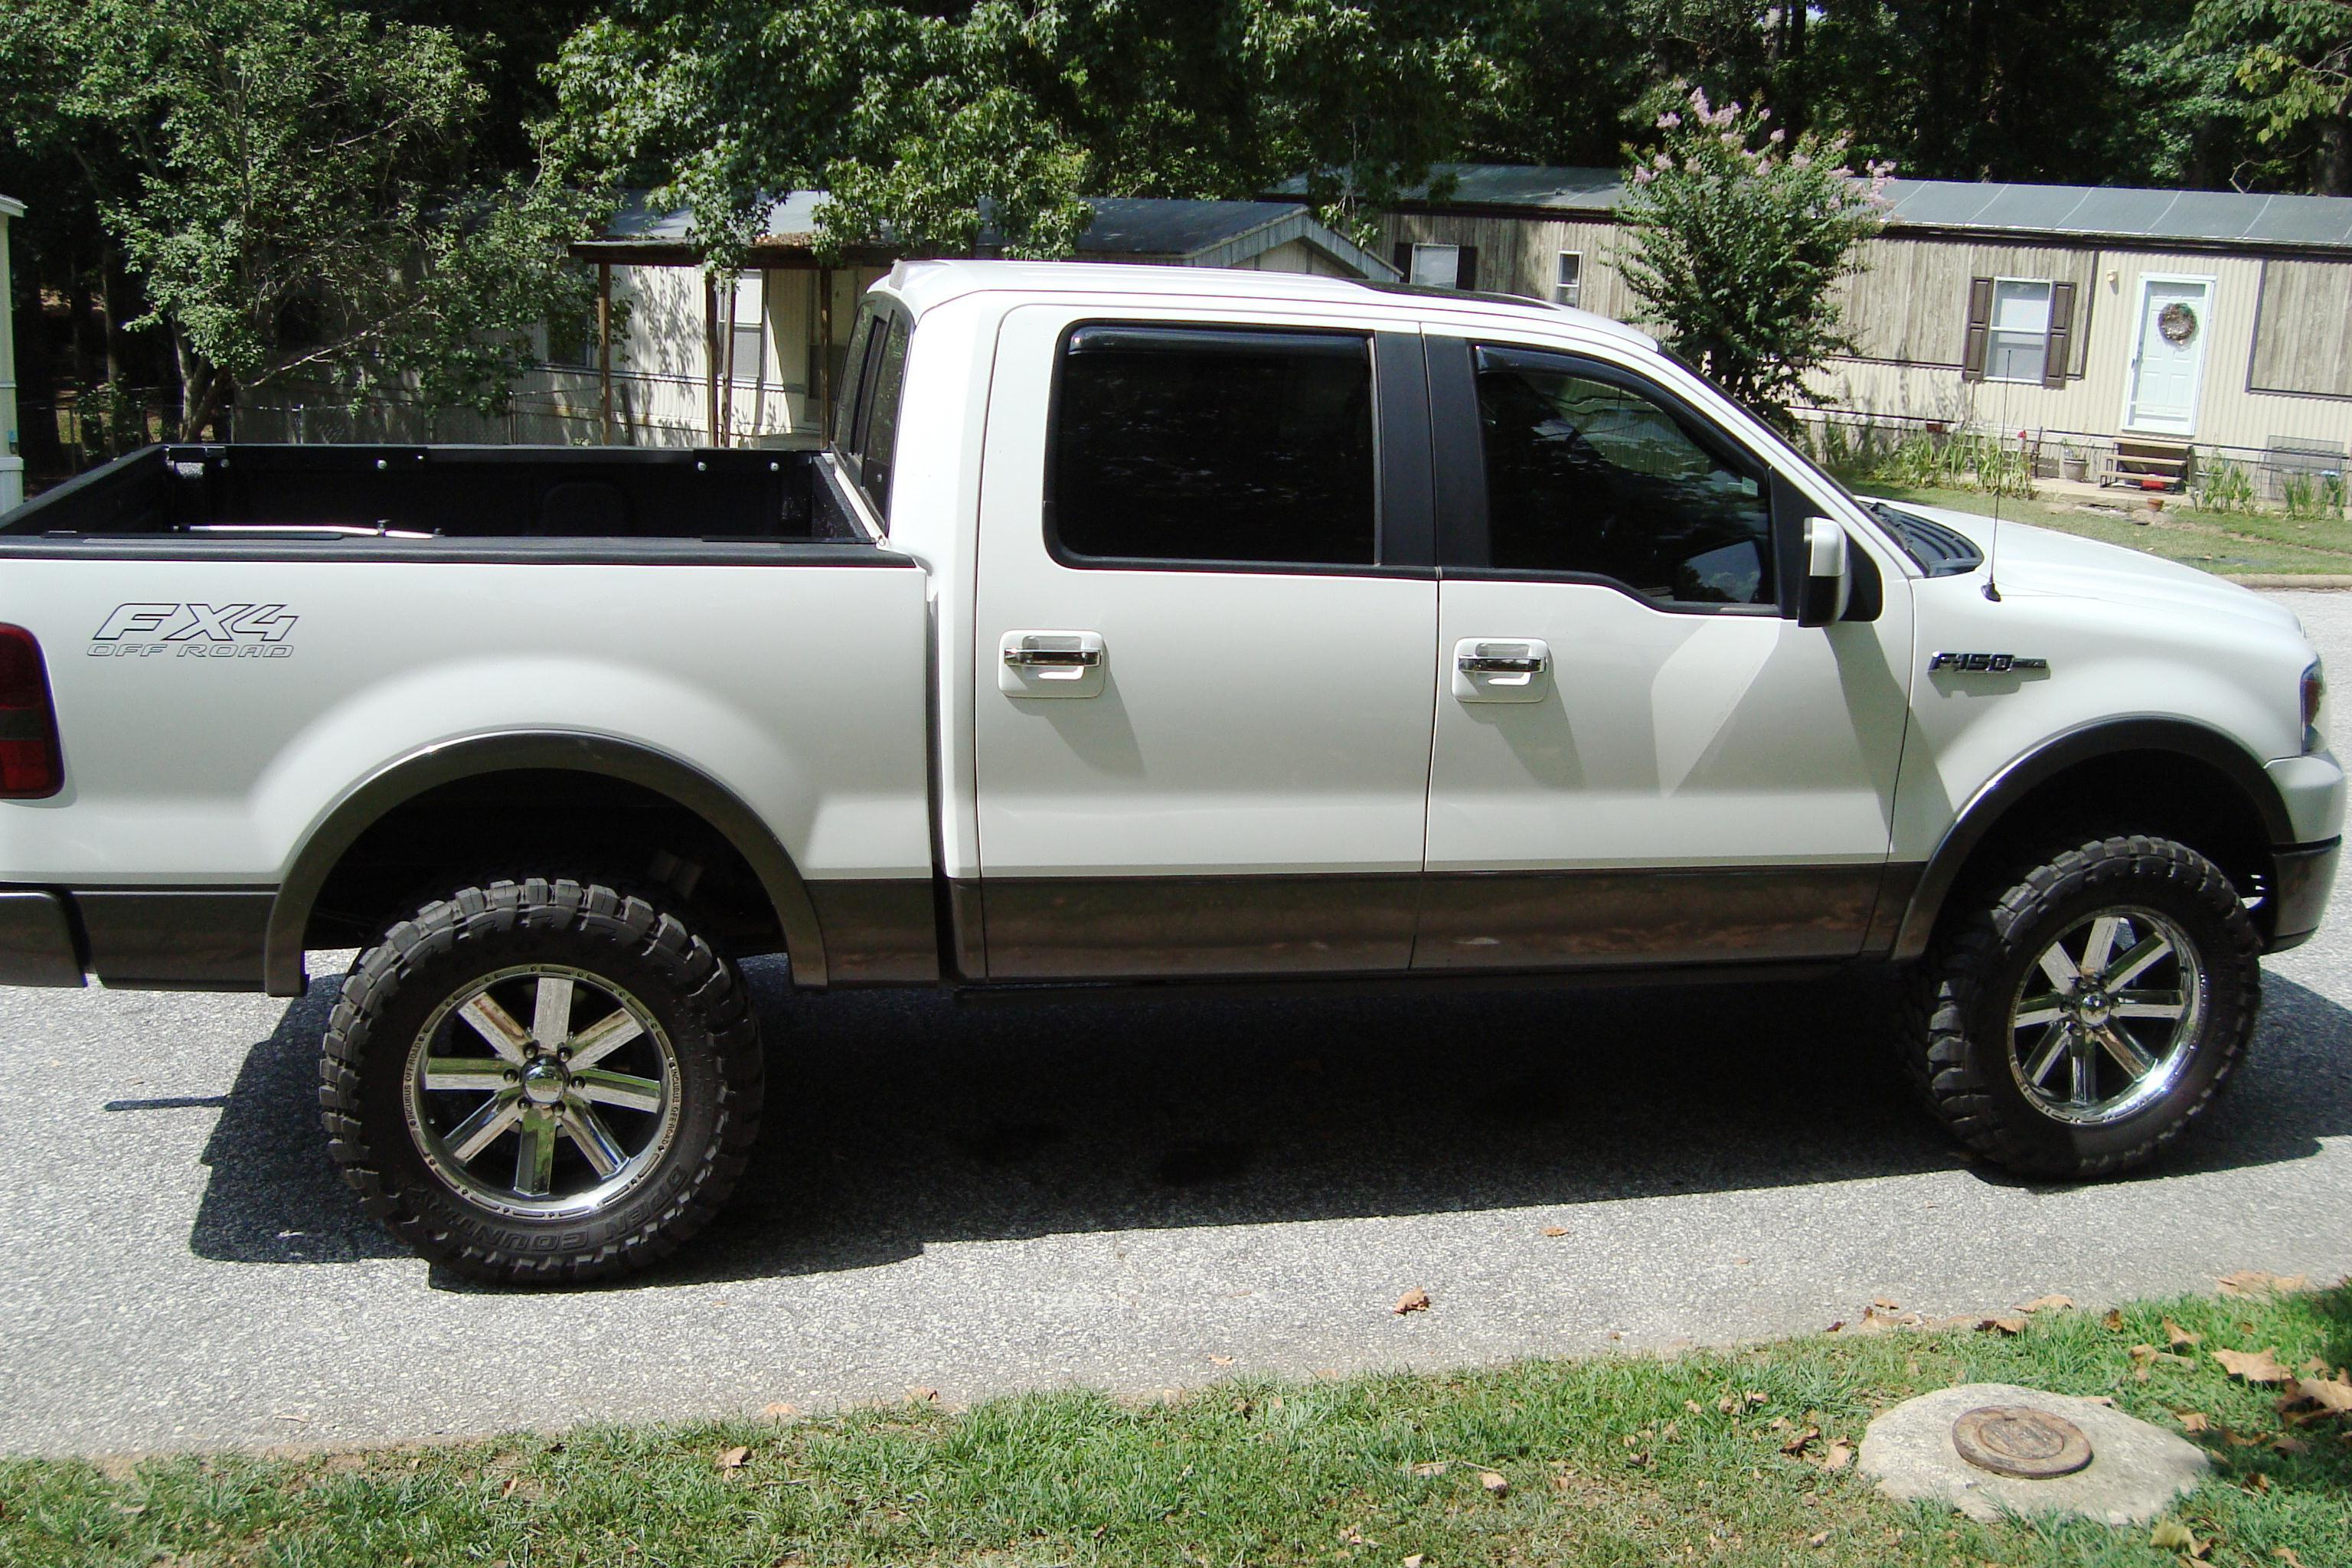 hunterh2007 2007 ford f150 supercrew cabfx4 styleside pickup 4d 5 1 2 ft specs photos. Black Bedroom Furniture Sets. Home Design Ideas